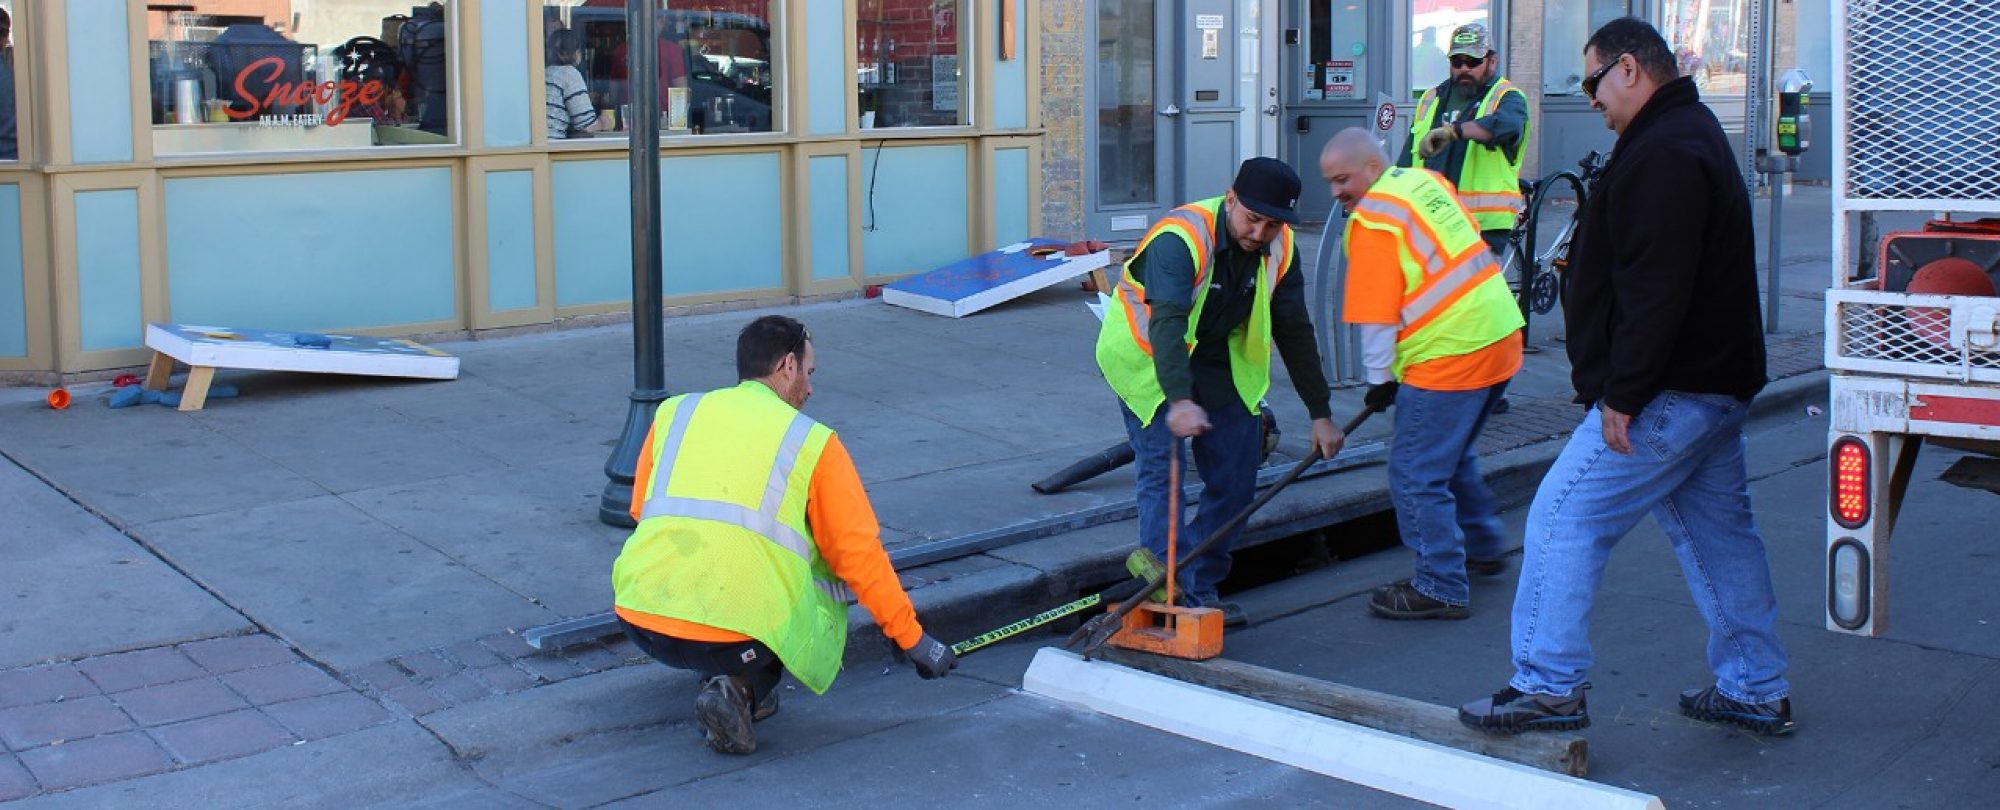 crew in safety gear installing bike parking outside Snooze restaurant